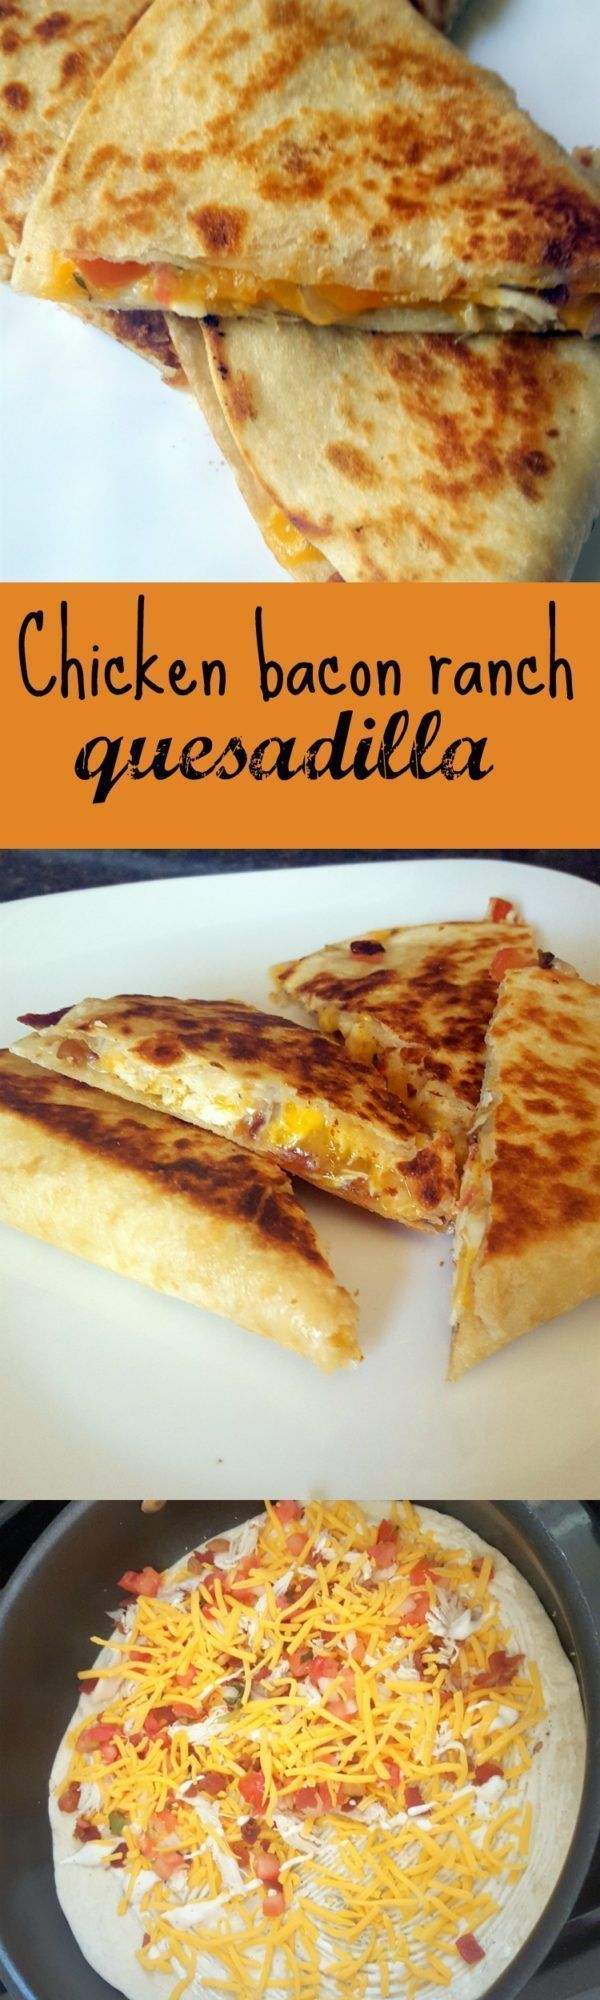 Chicken bacon ranch quesadilla - A crispy quesadilla filled with chicken, bacon and ranch. With the added kick of jalapenos and pico de gallo. (Chicken Bacon)